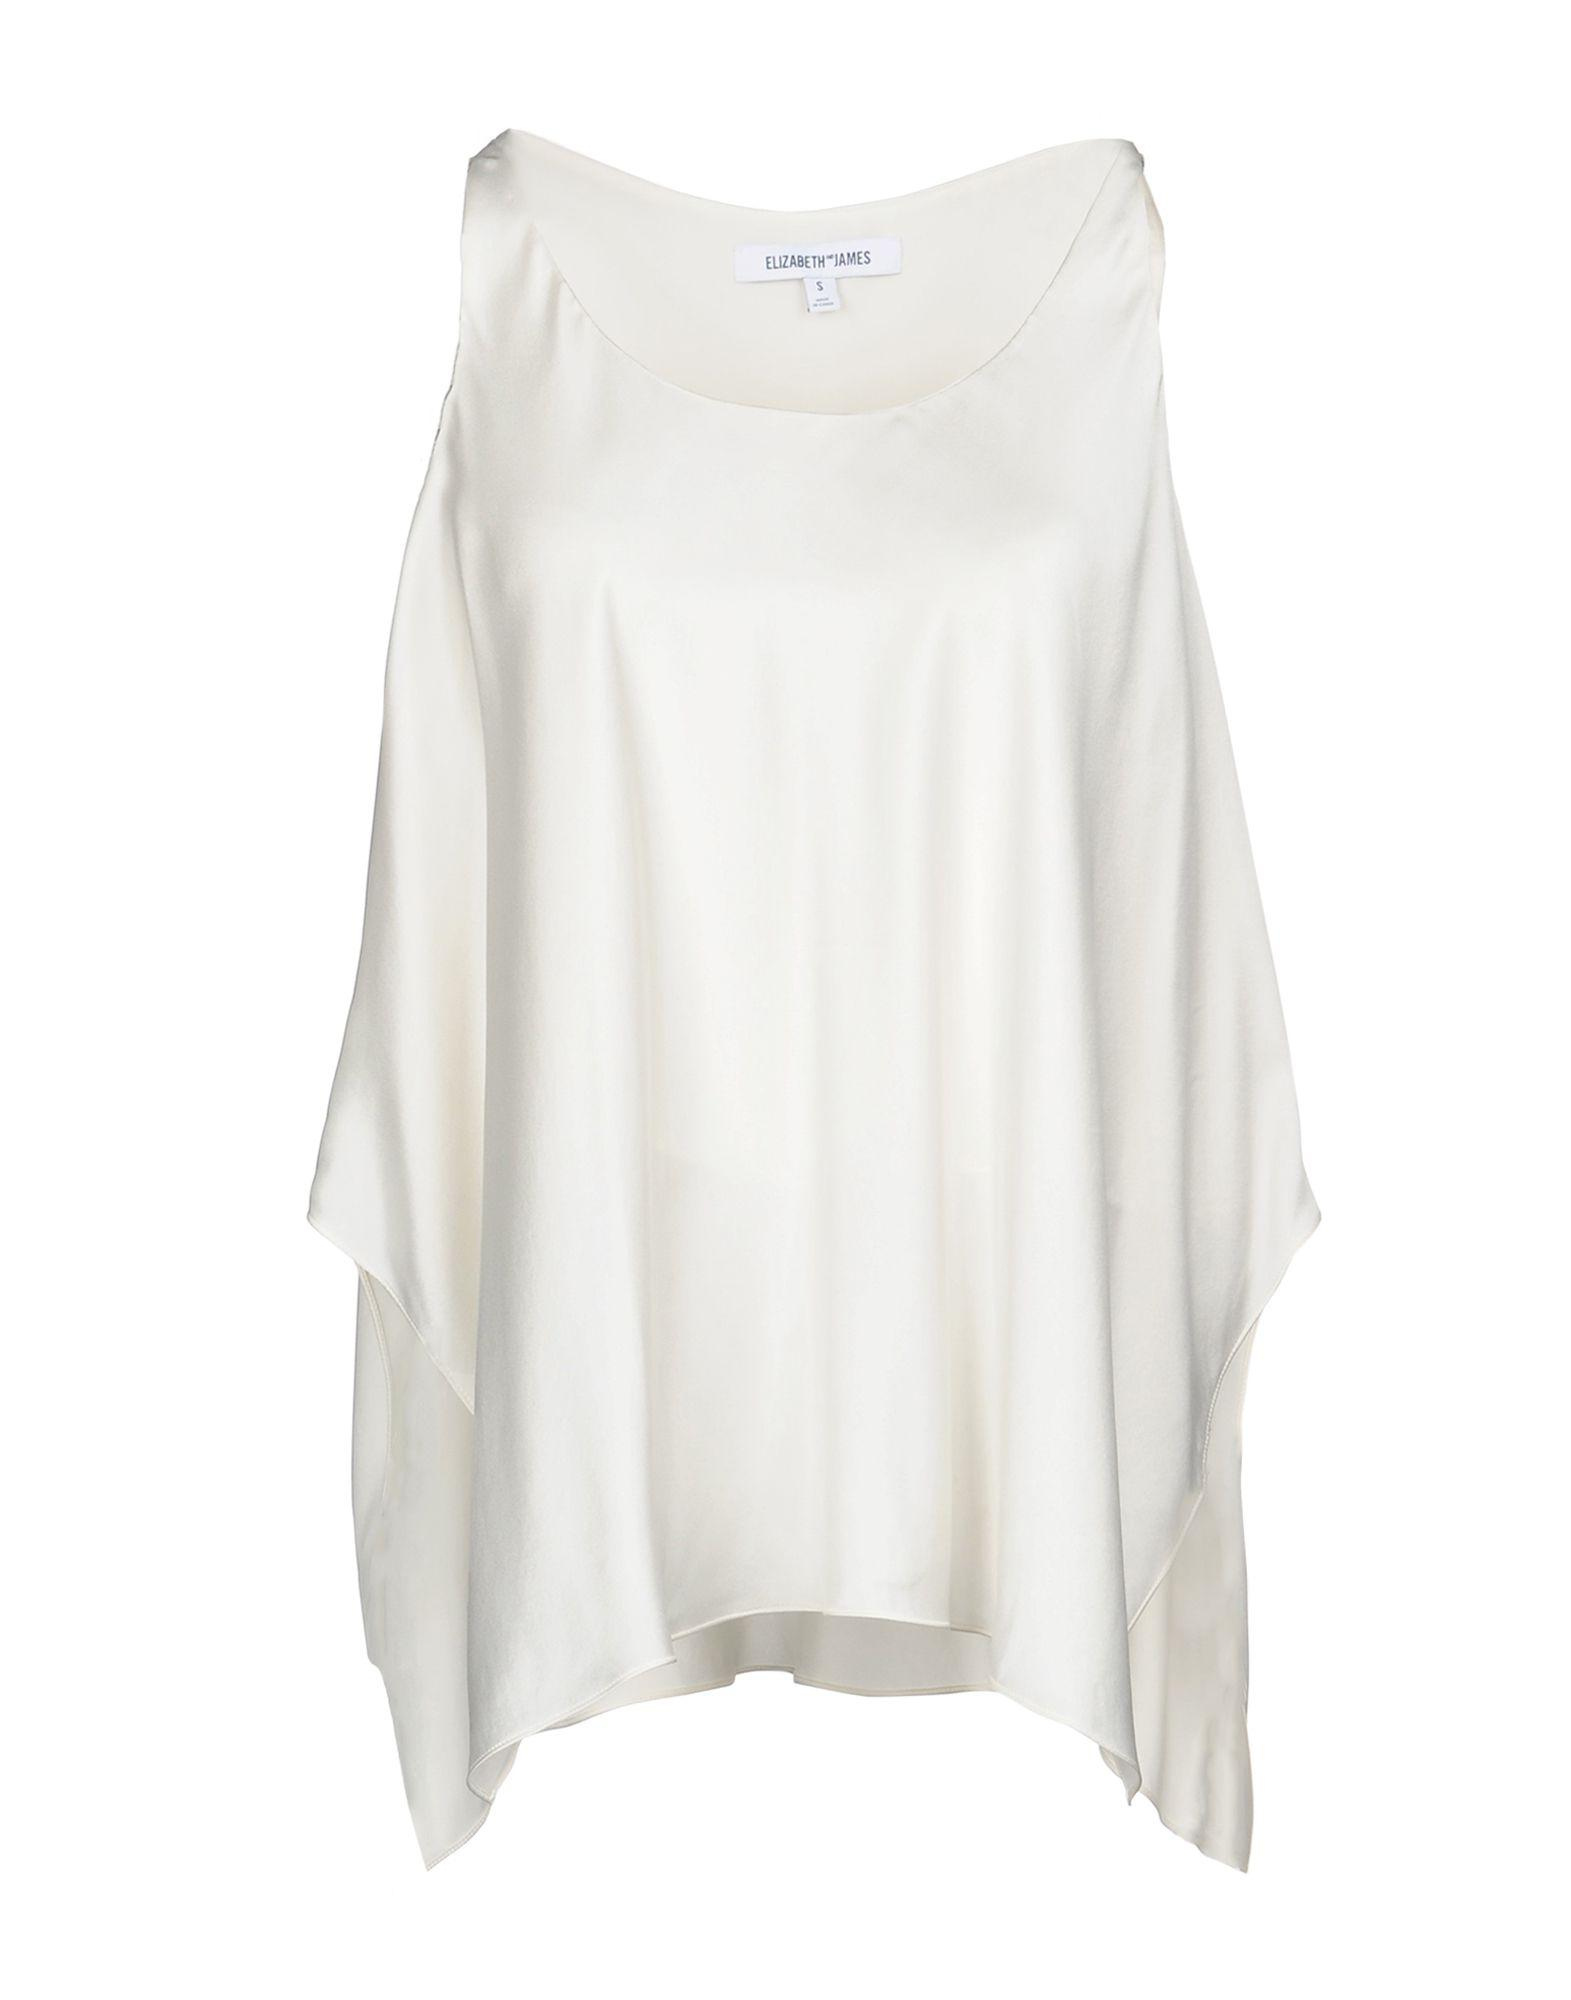 57fecfcbfe4ce2 Elizabeth And James Silk Top In Ivory